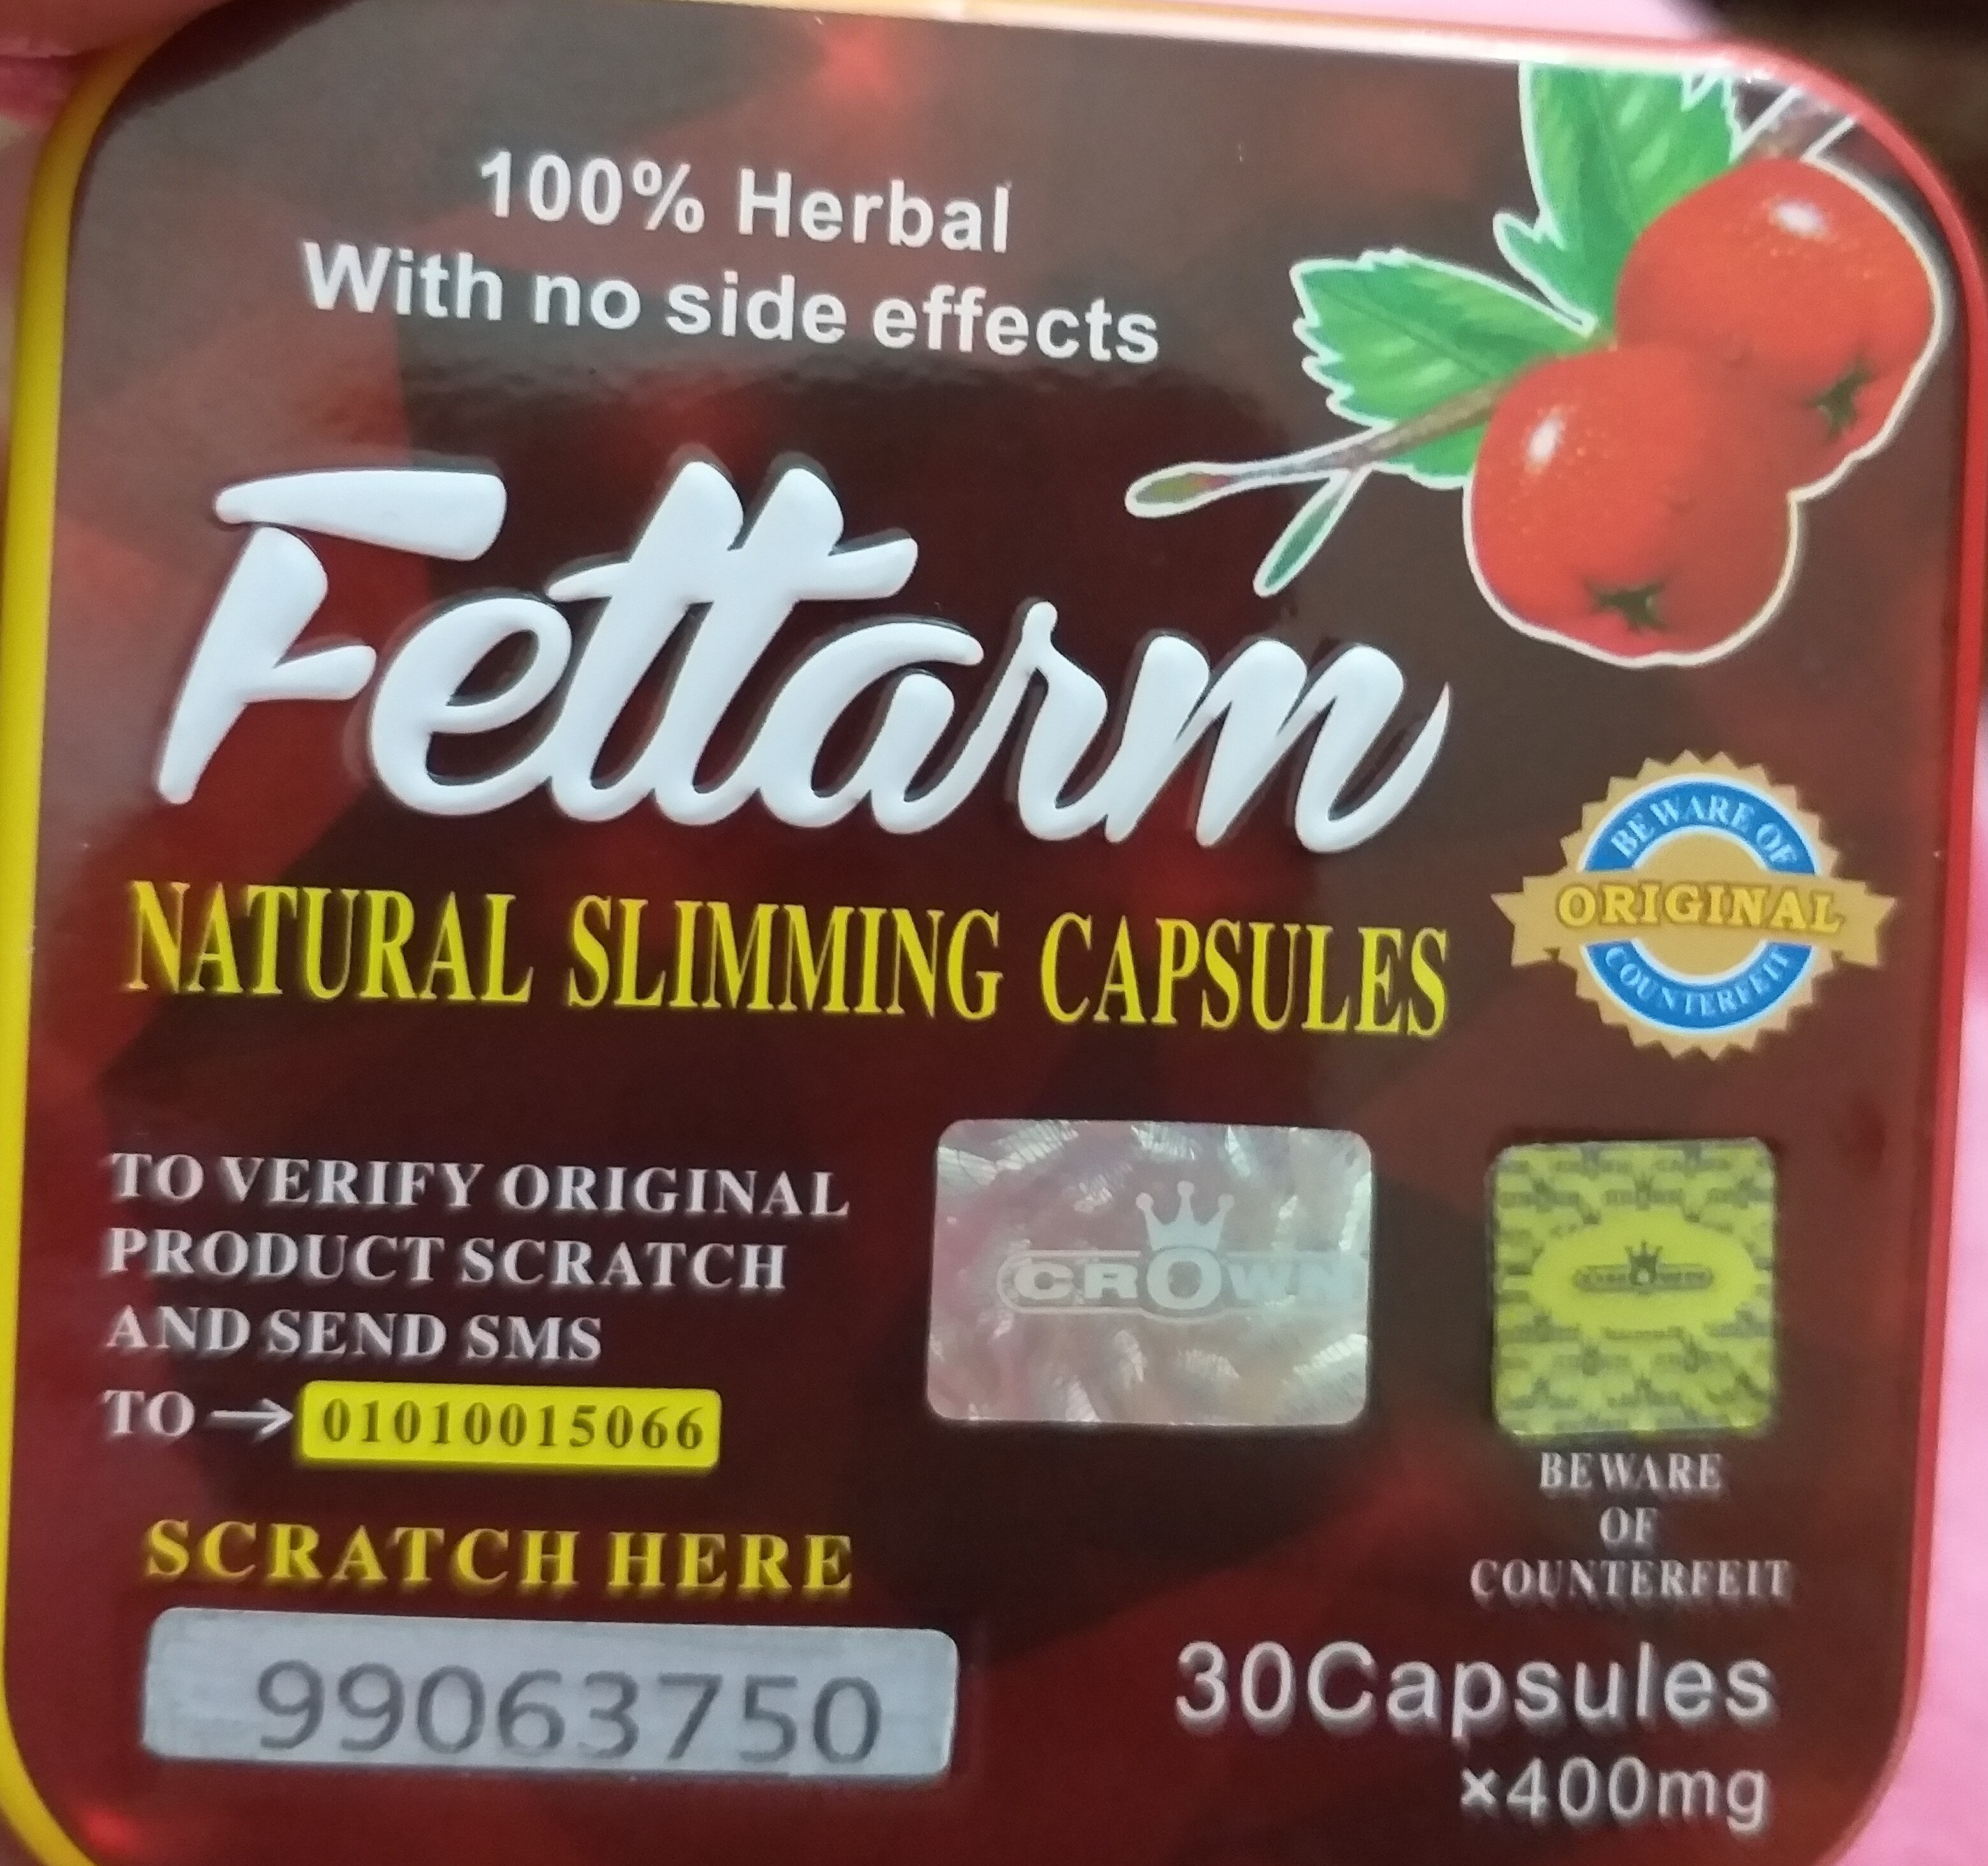 Fettarm weight loss support 30 Capsules Square - Product - en